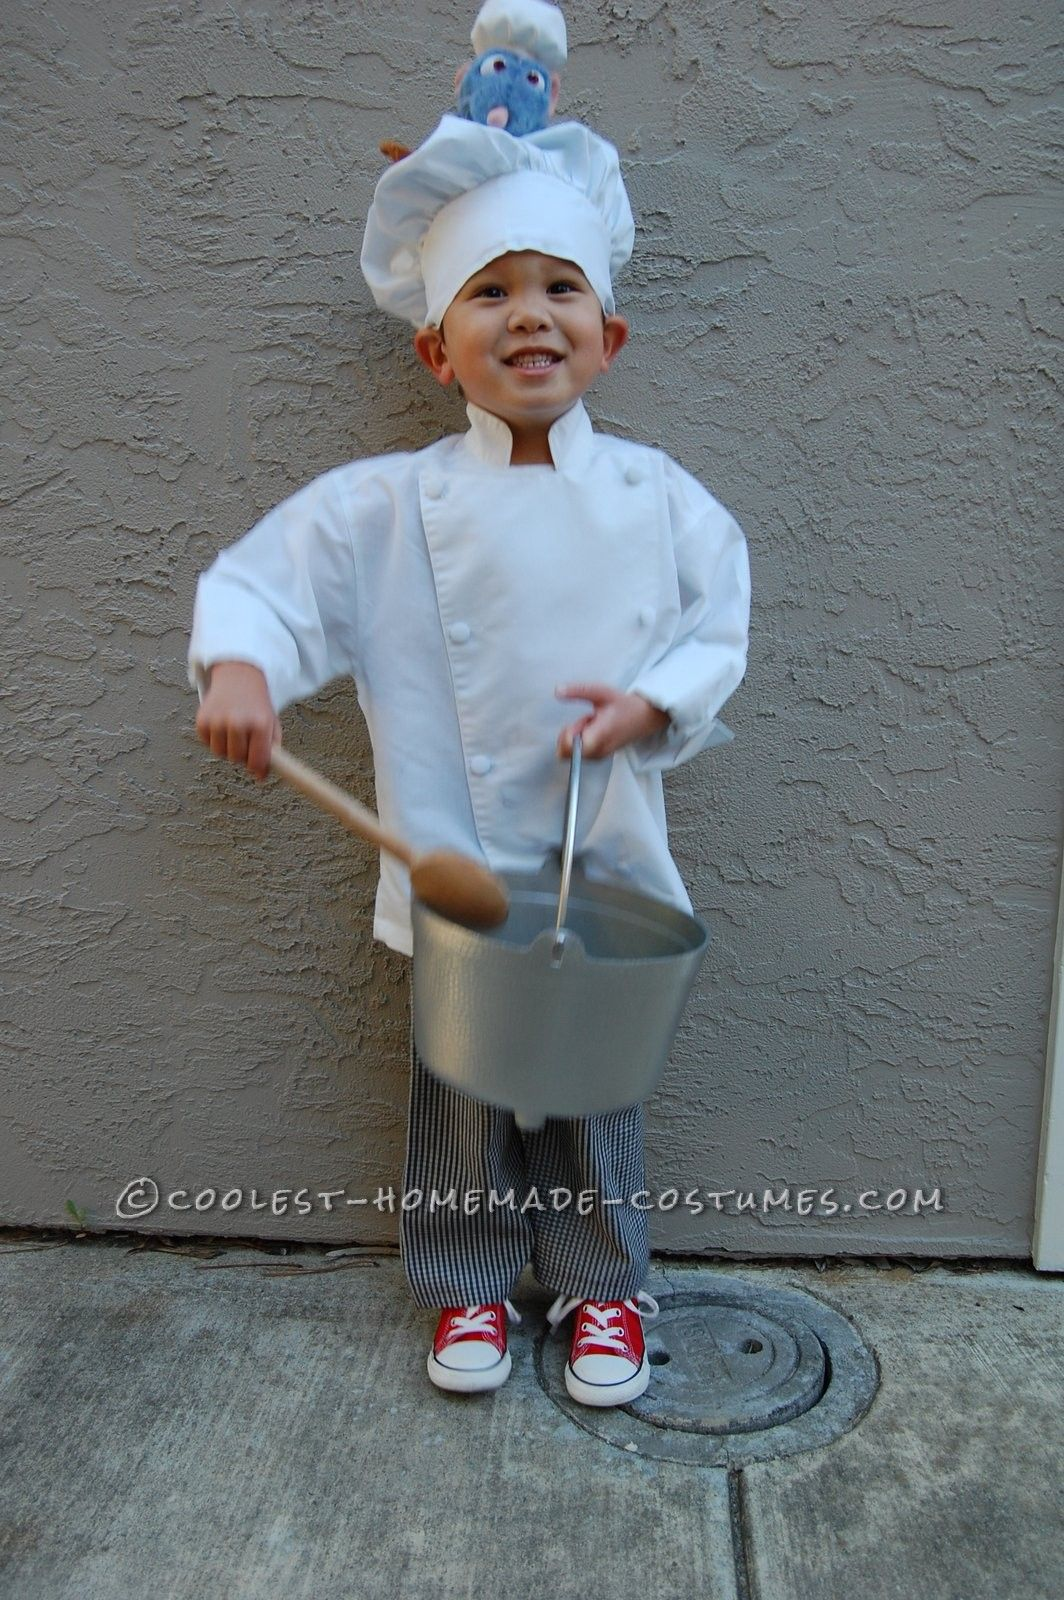 Disney Costume Cutest Thing Ever Old Halloween Costumes Disney Costumes For Kids Kids Chef Costume